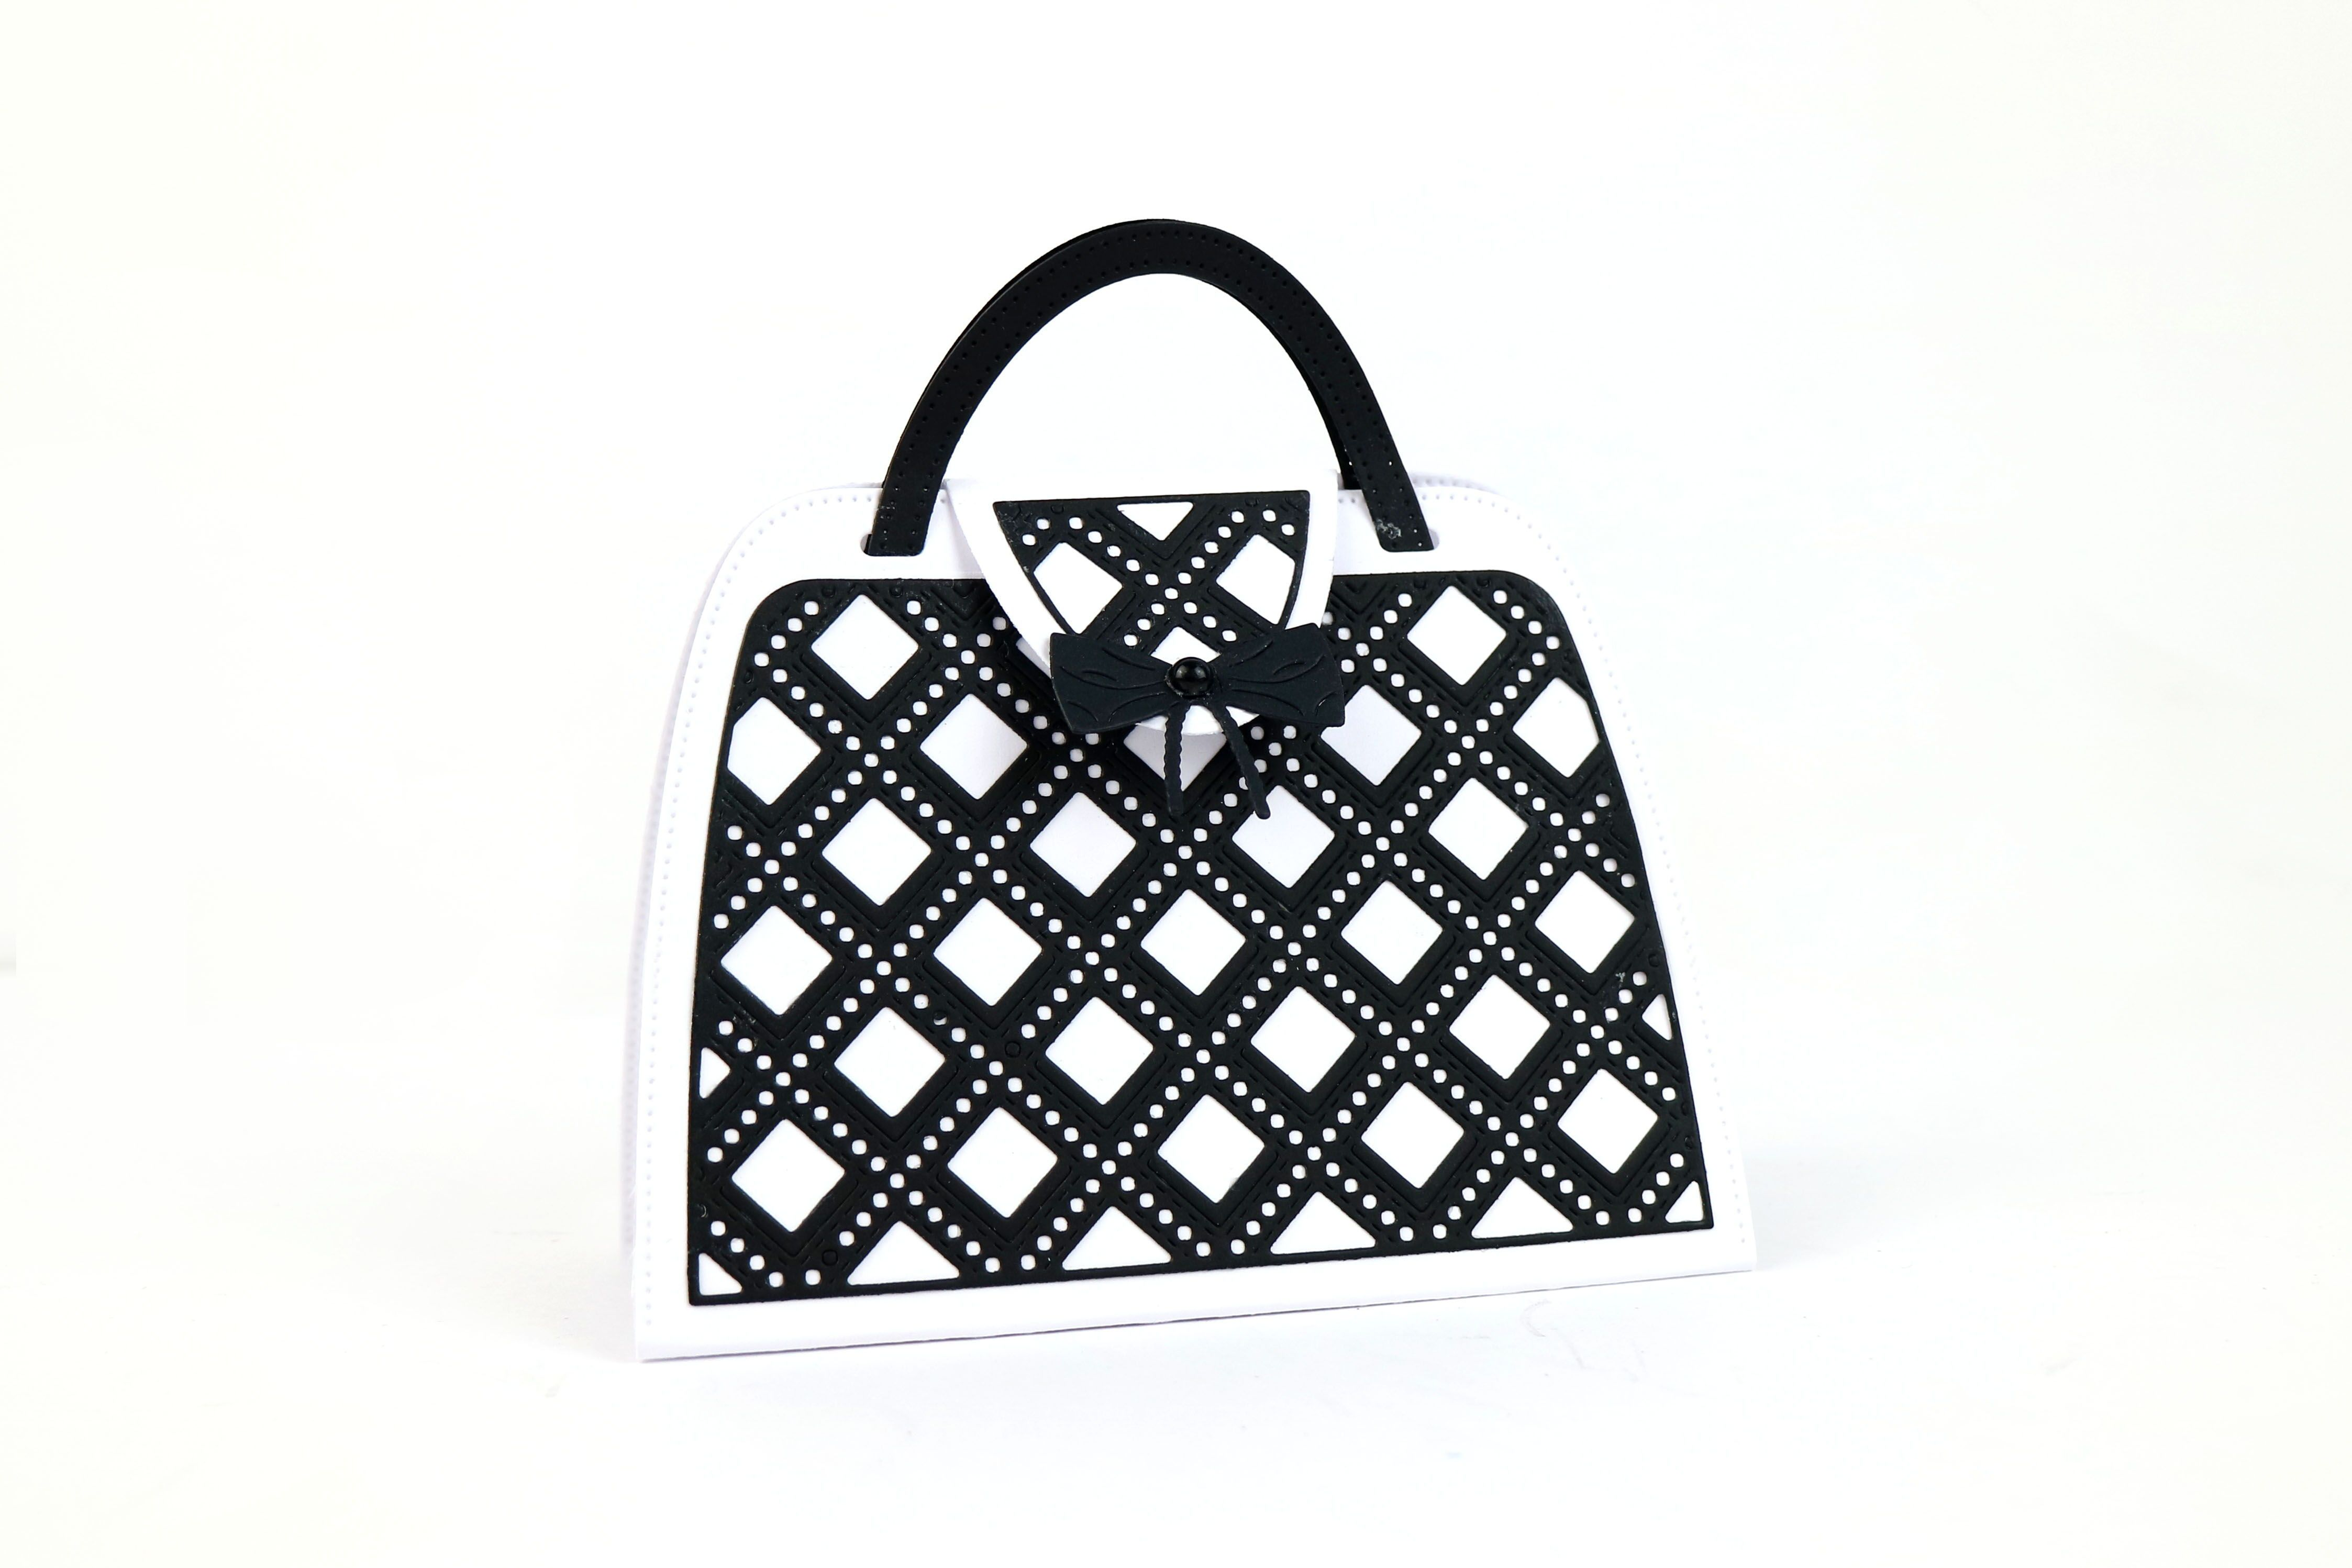 Handbag Template with Clasps (442678) from the Tactile Beauty by ...